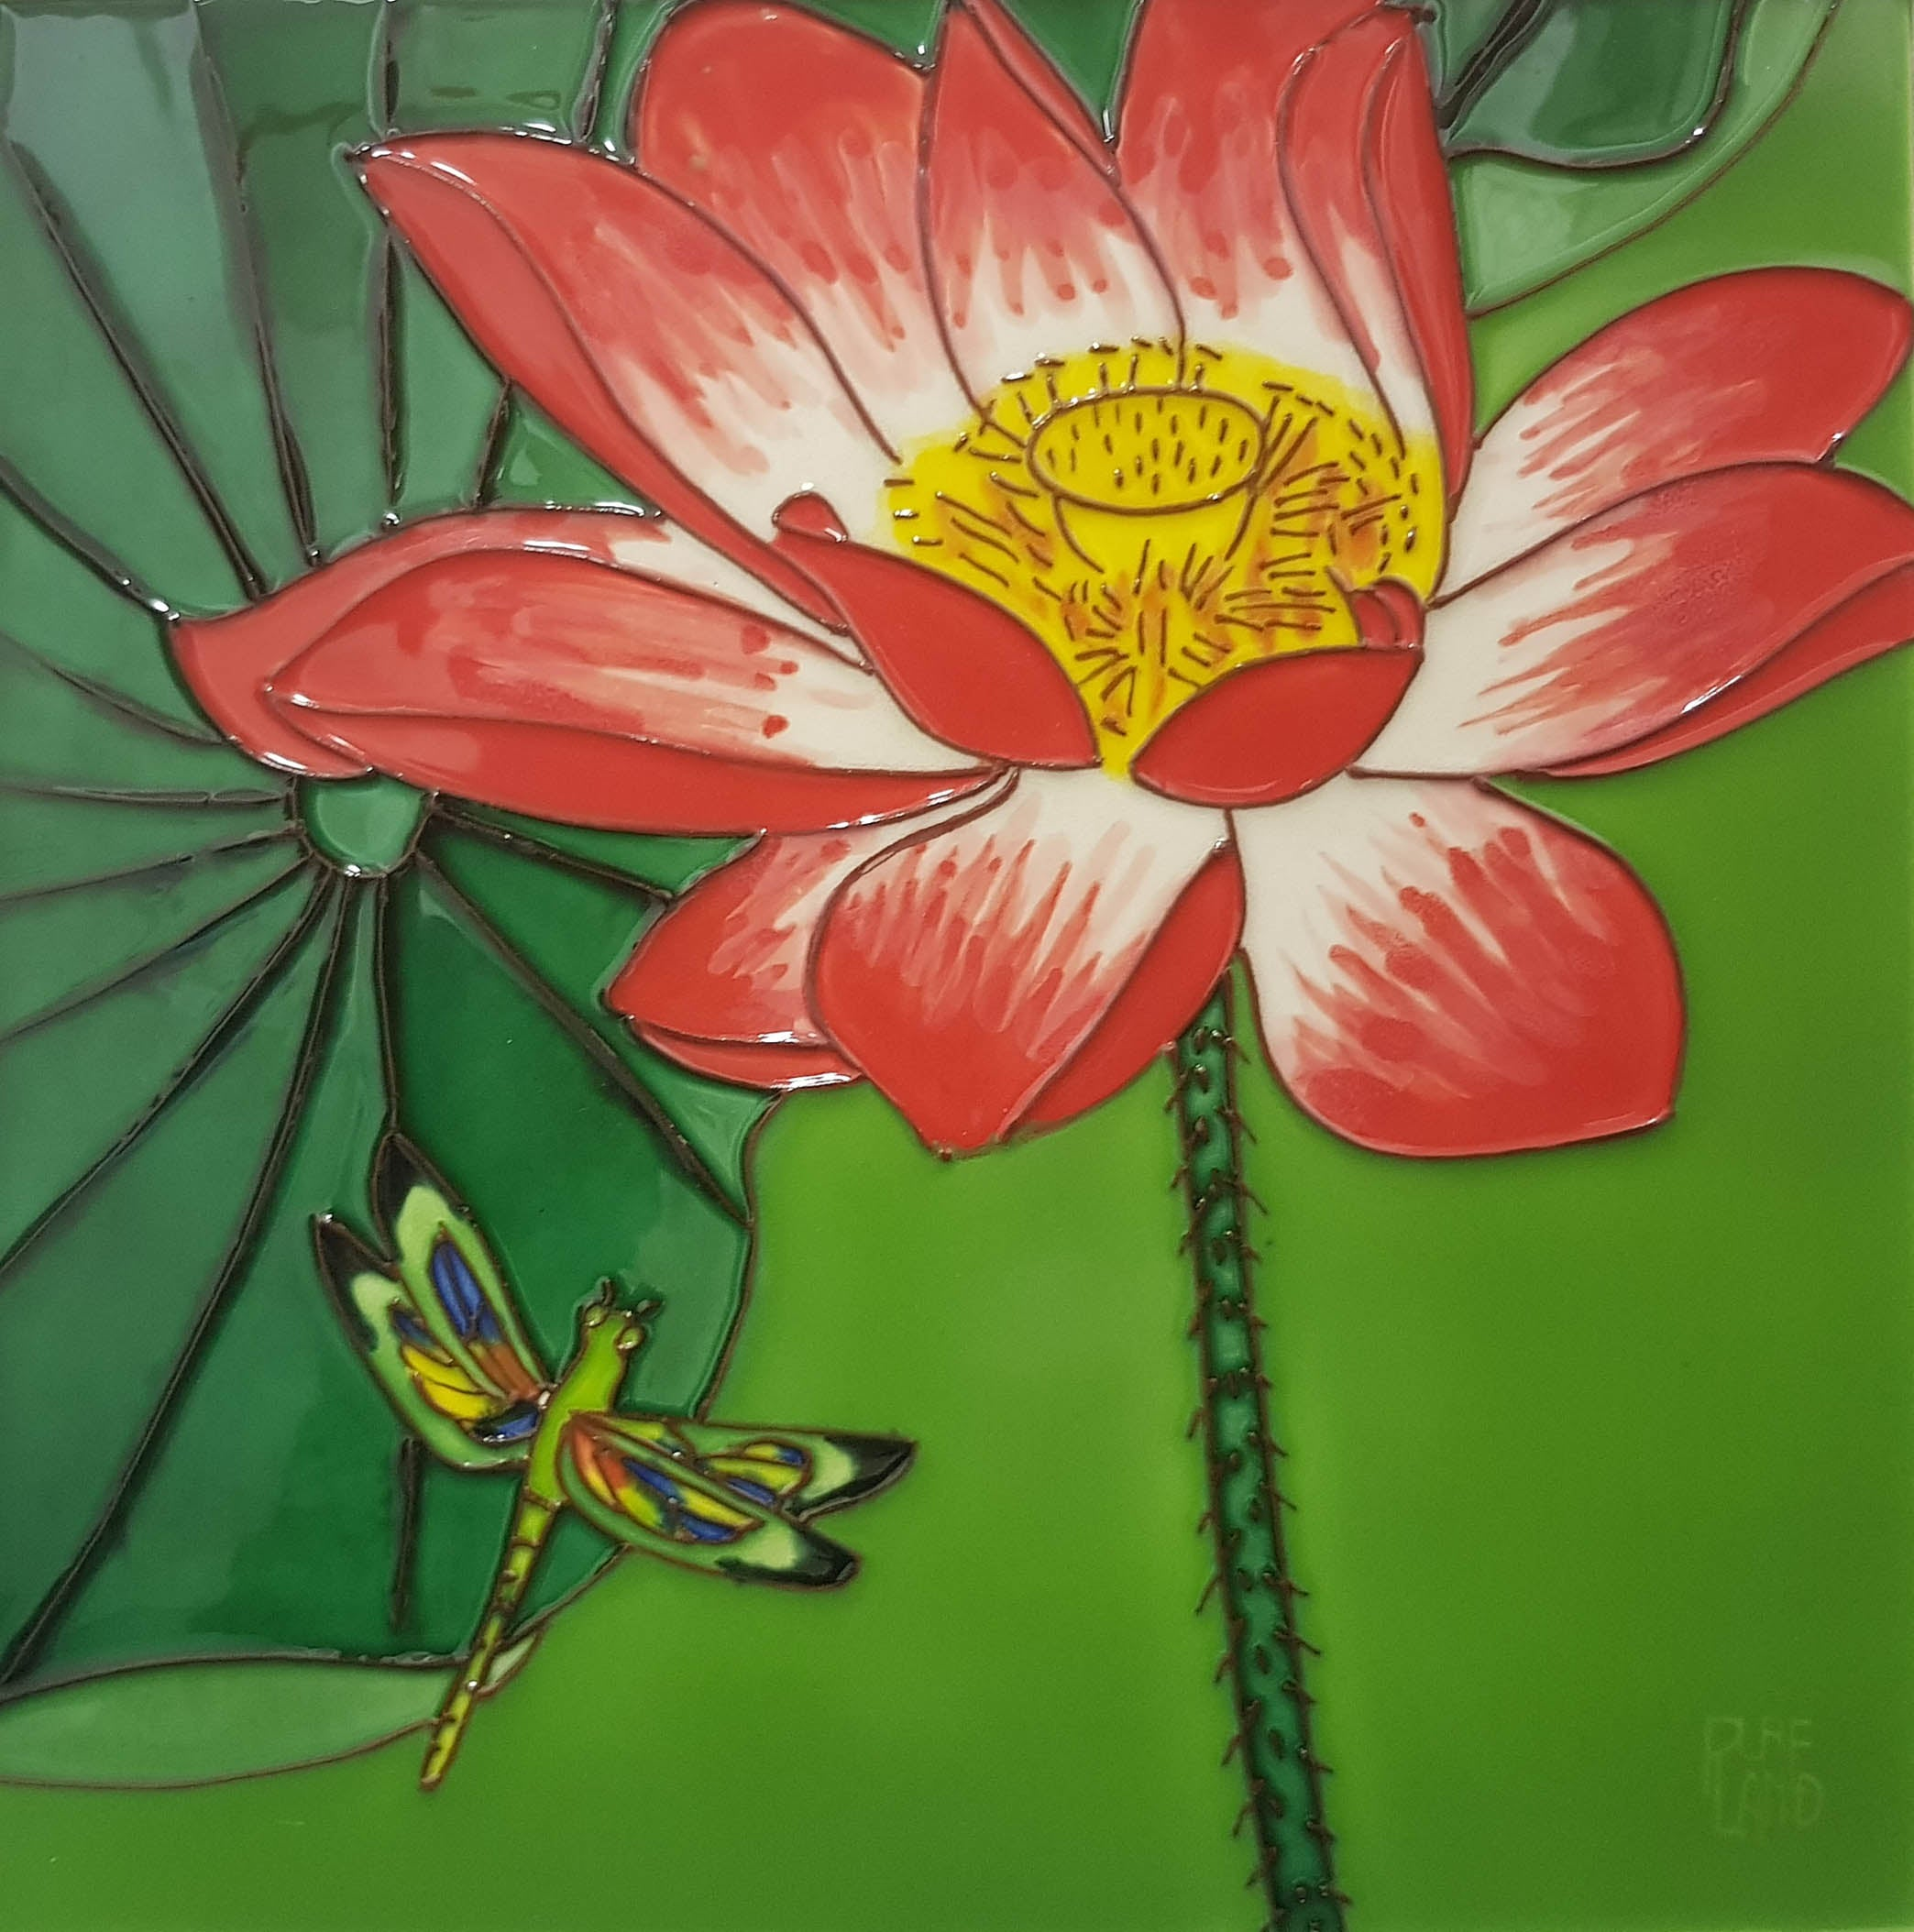 3521 Lotus Flower with Dragonfly Bottom Left 30cm x 30cm Ceramic Tile